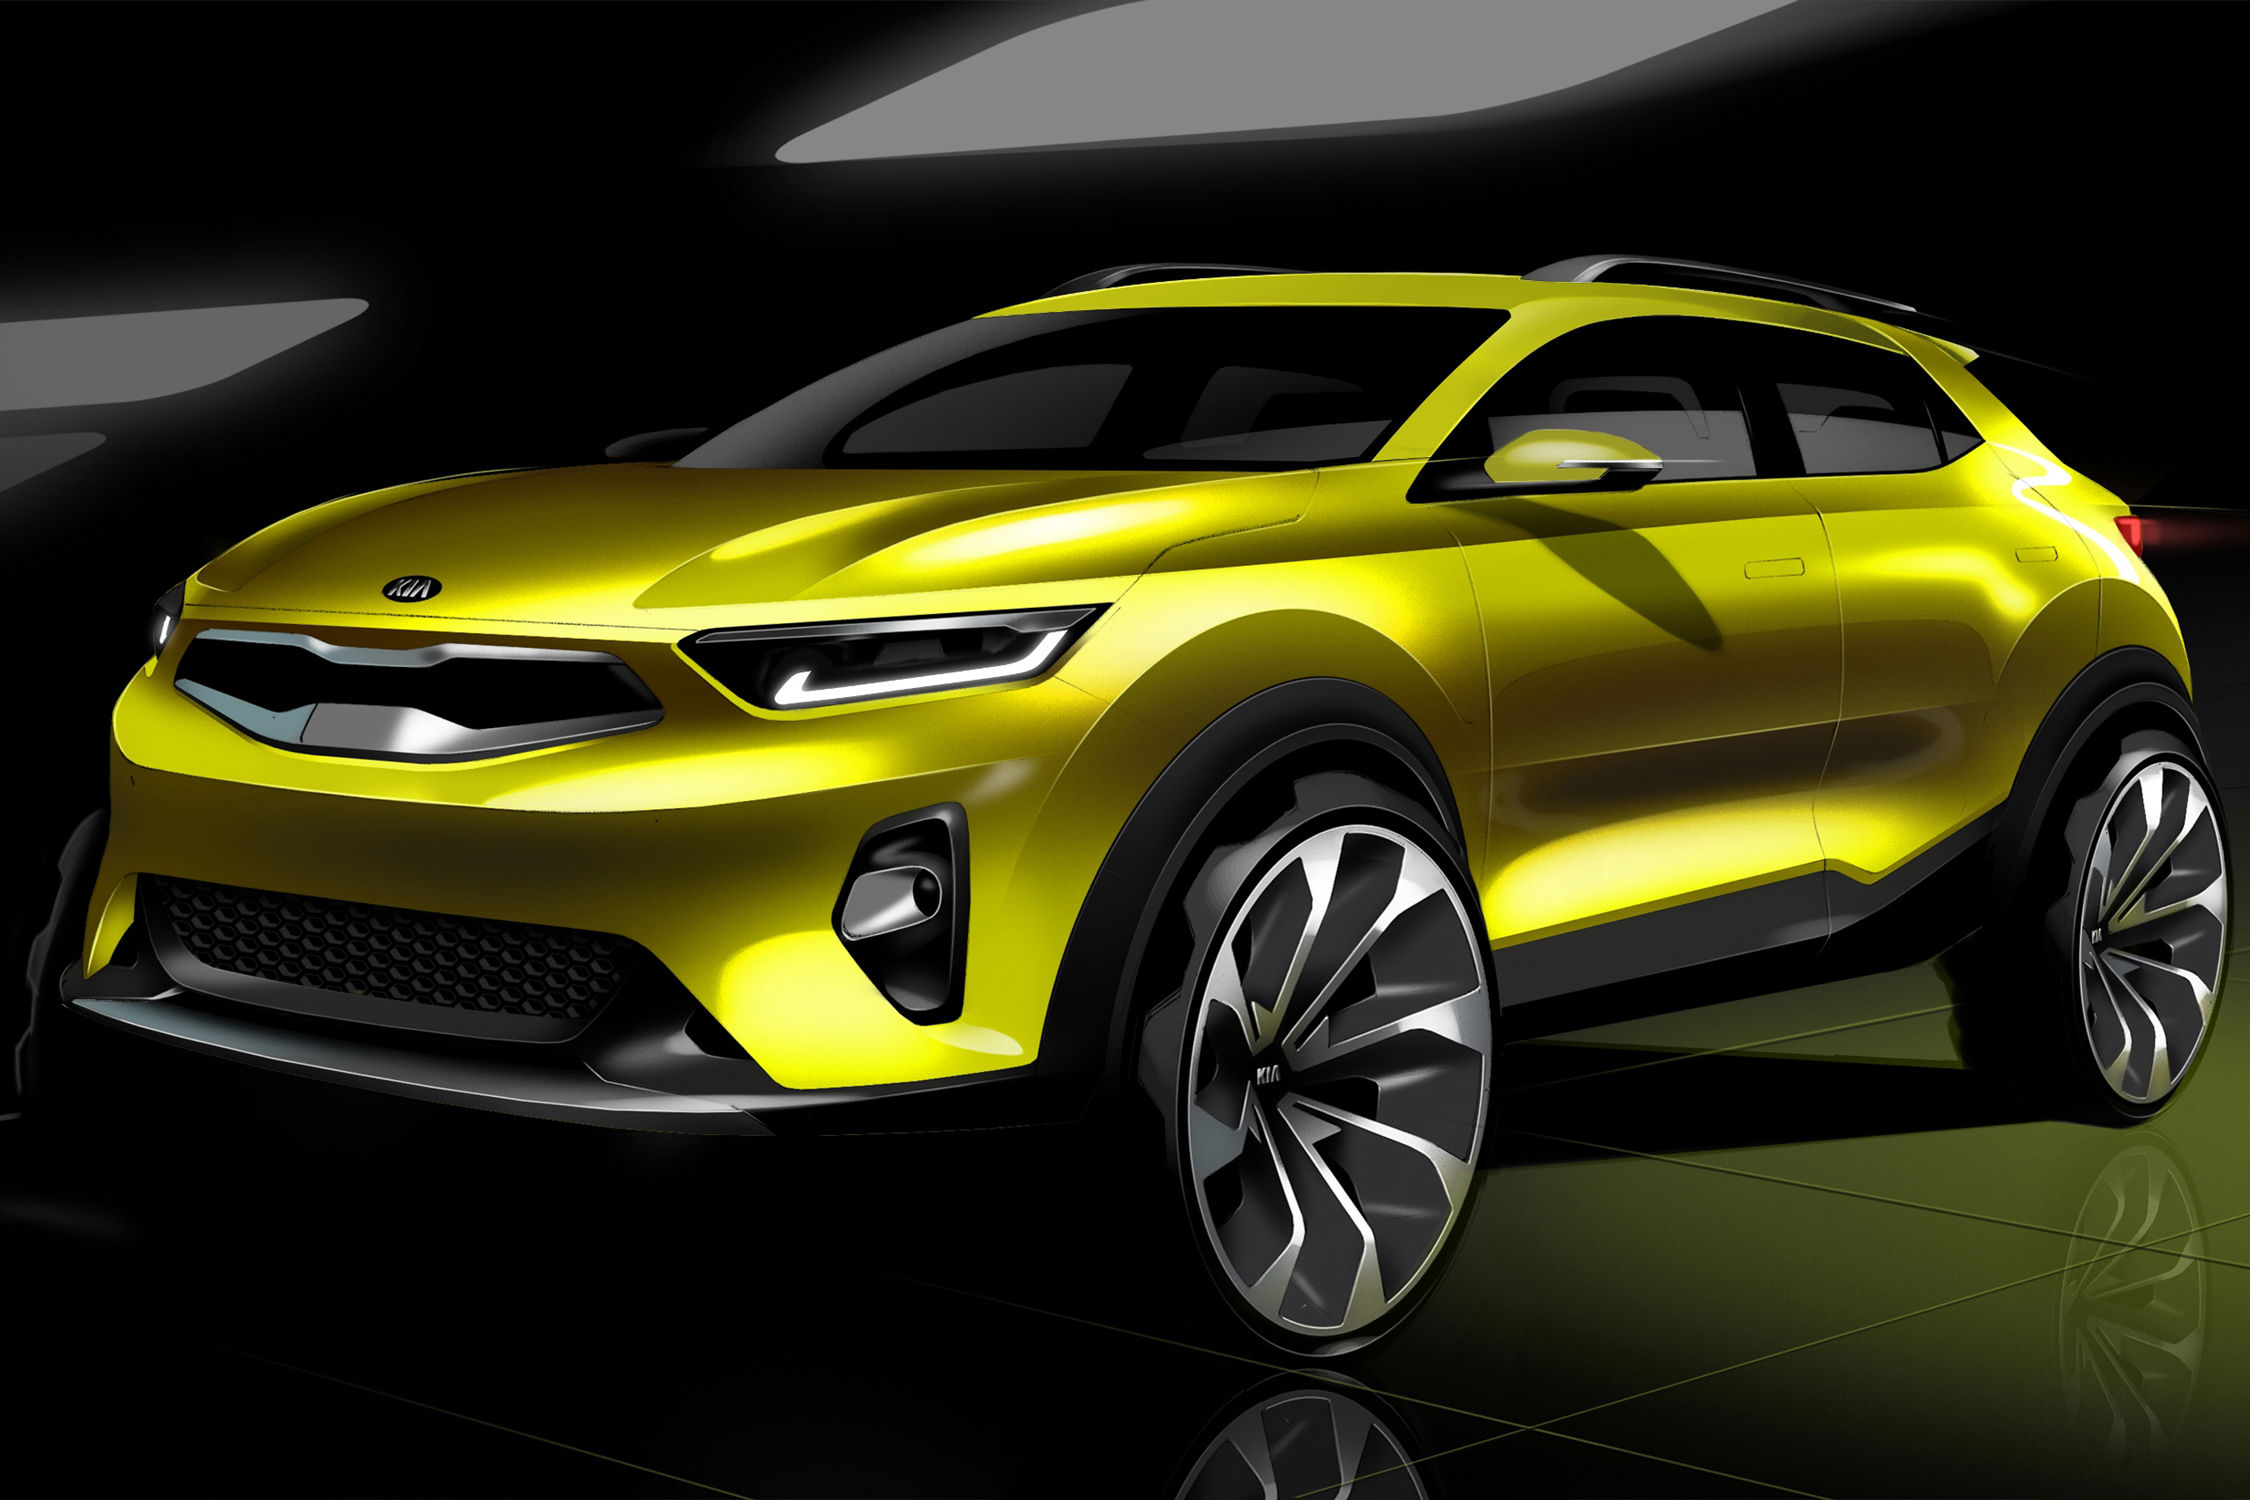 crossover kia stonic premi res images actualit automobile motorlegend. Black Bedroom Furniture Sets. Home Design Ideas